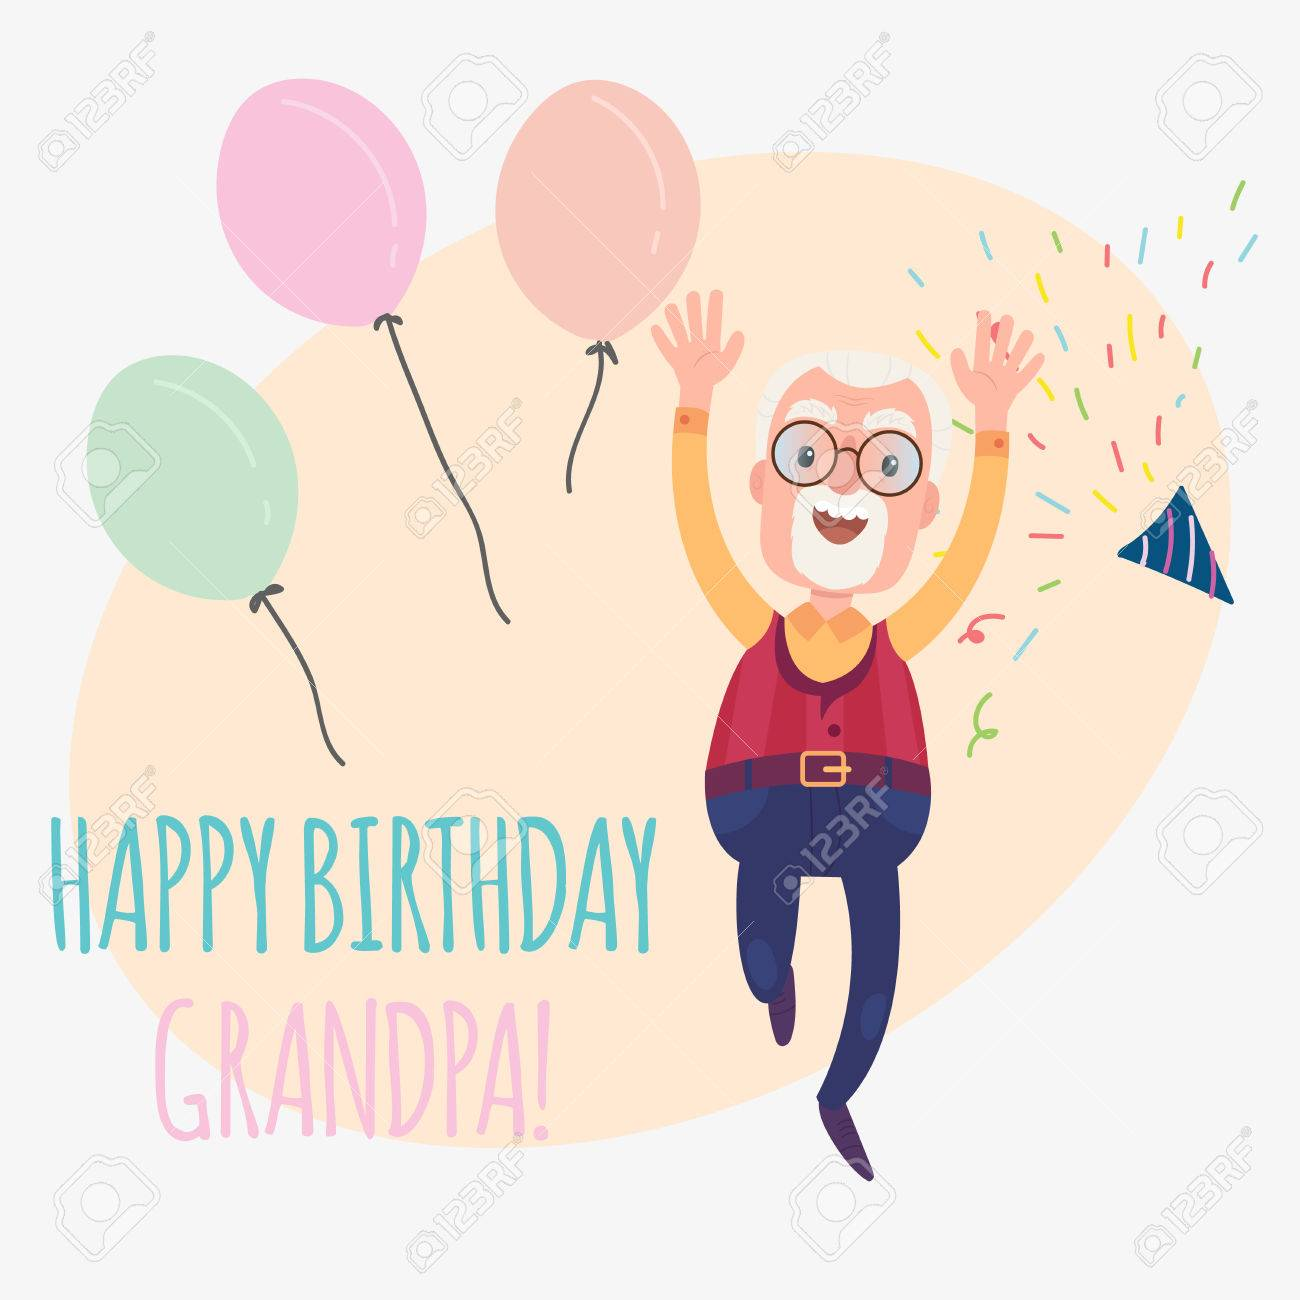 Happy Birthday Grandfather Funny Card With Confetti And Balloons Vector Illustration Stock